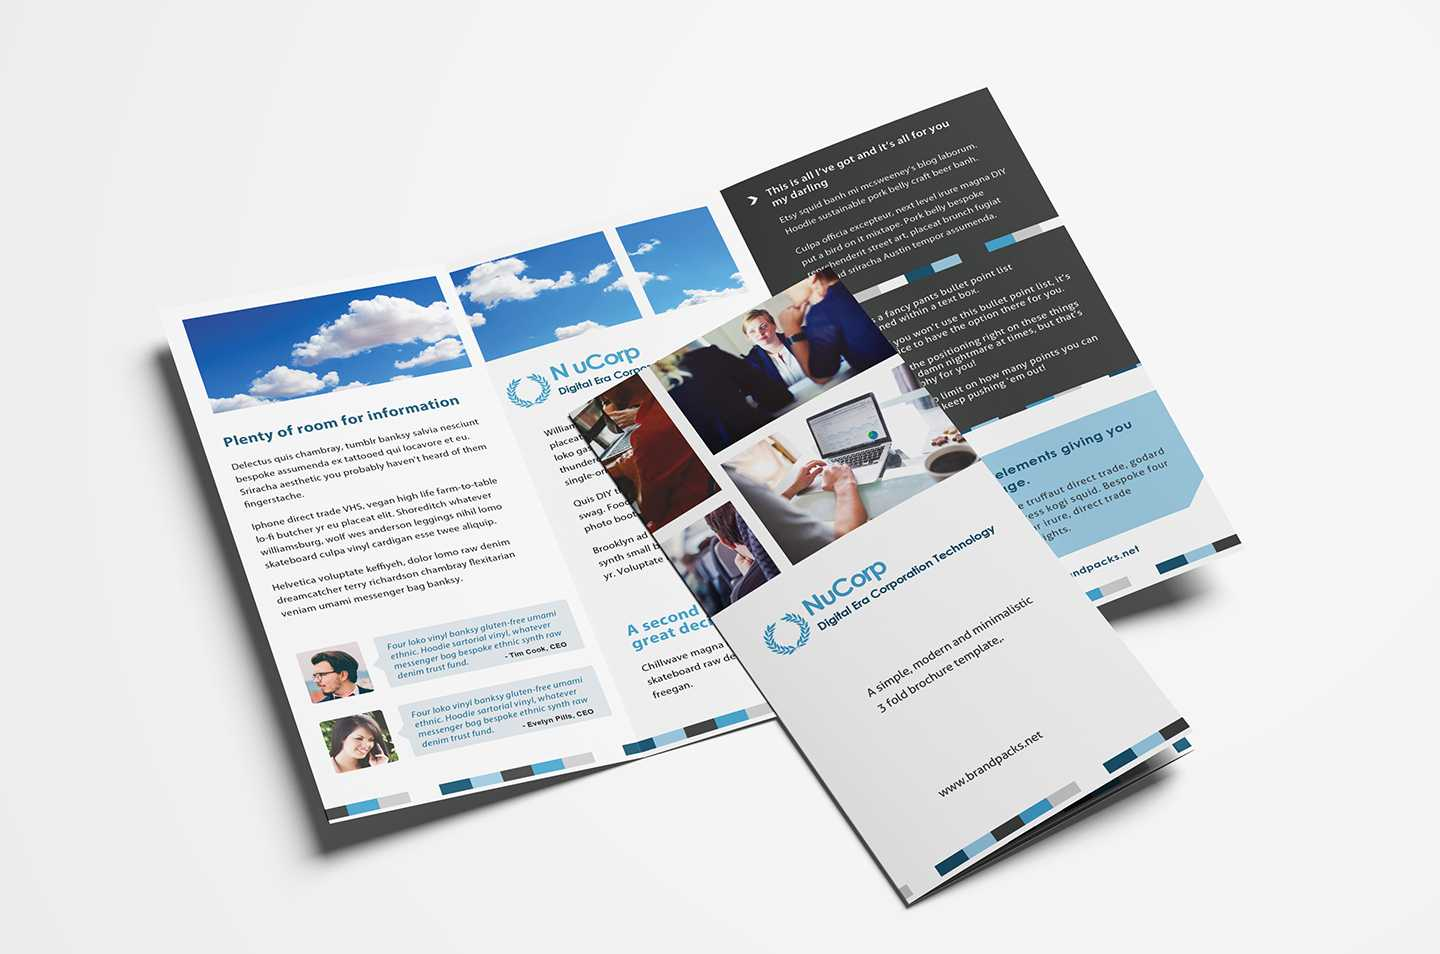 Free Corporate Trifold Brochure Template In Psd, Ai & Vector intended for 2 Fold Brochure Template Free